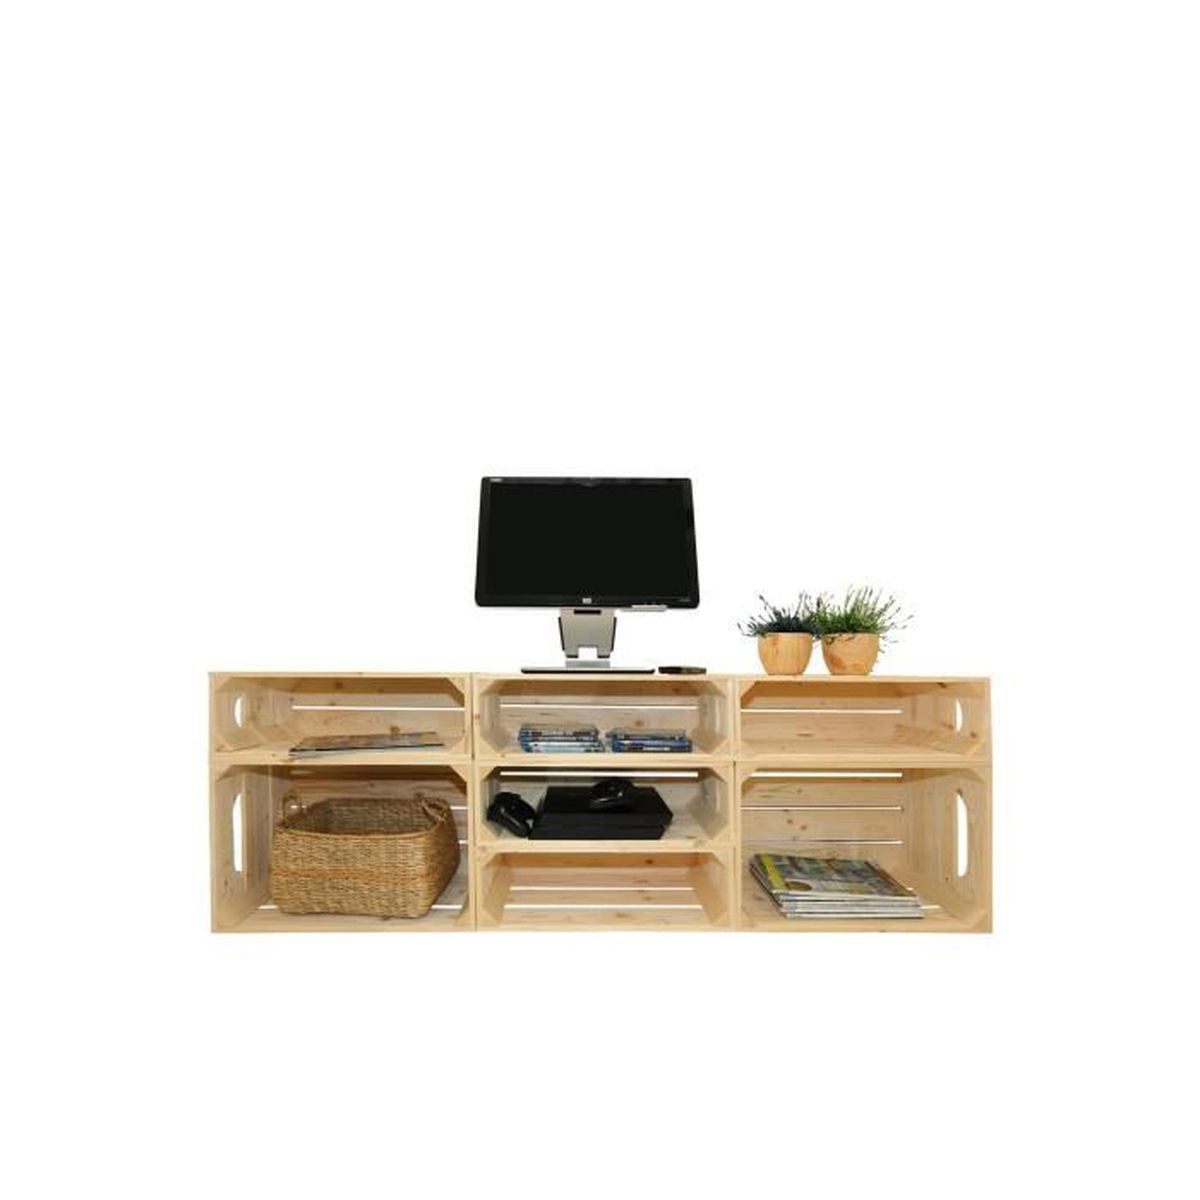 meuble tv 2s5h kit pr t assembler caisses en bois. Black Bedroom Furniture Sets. Home Design Ideas